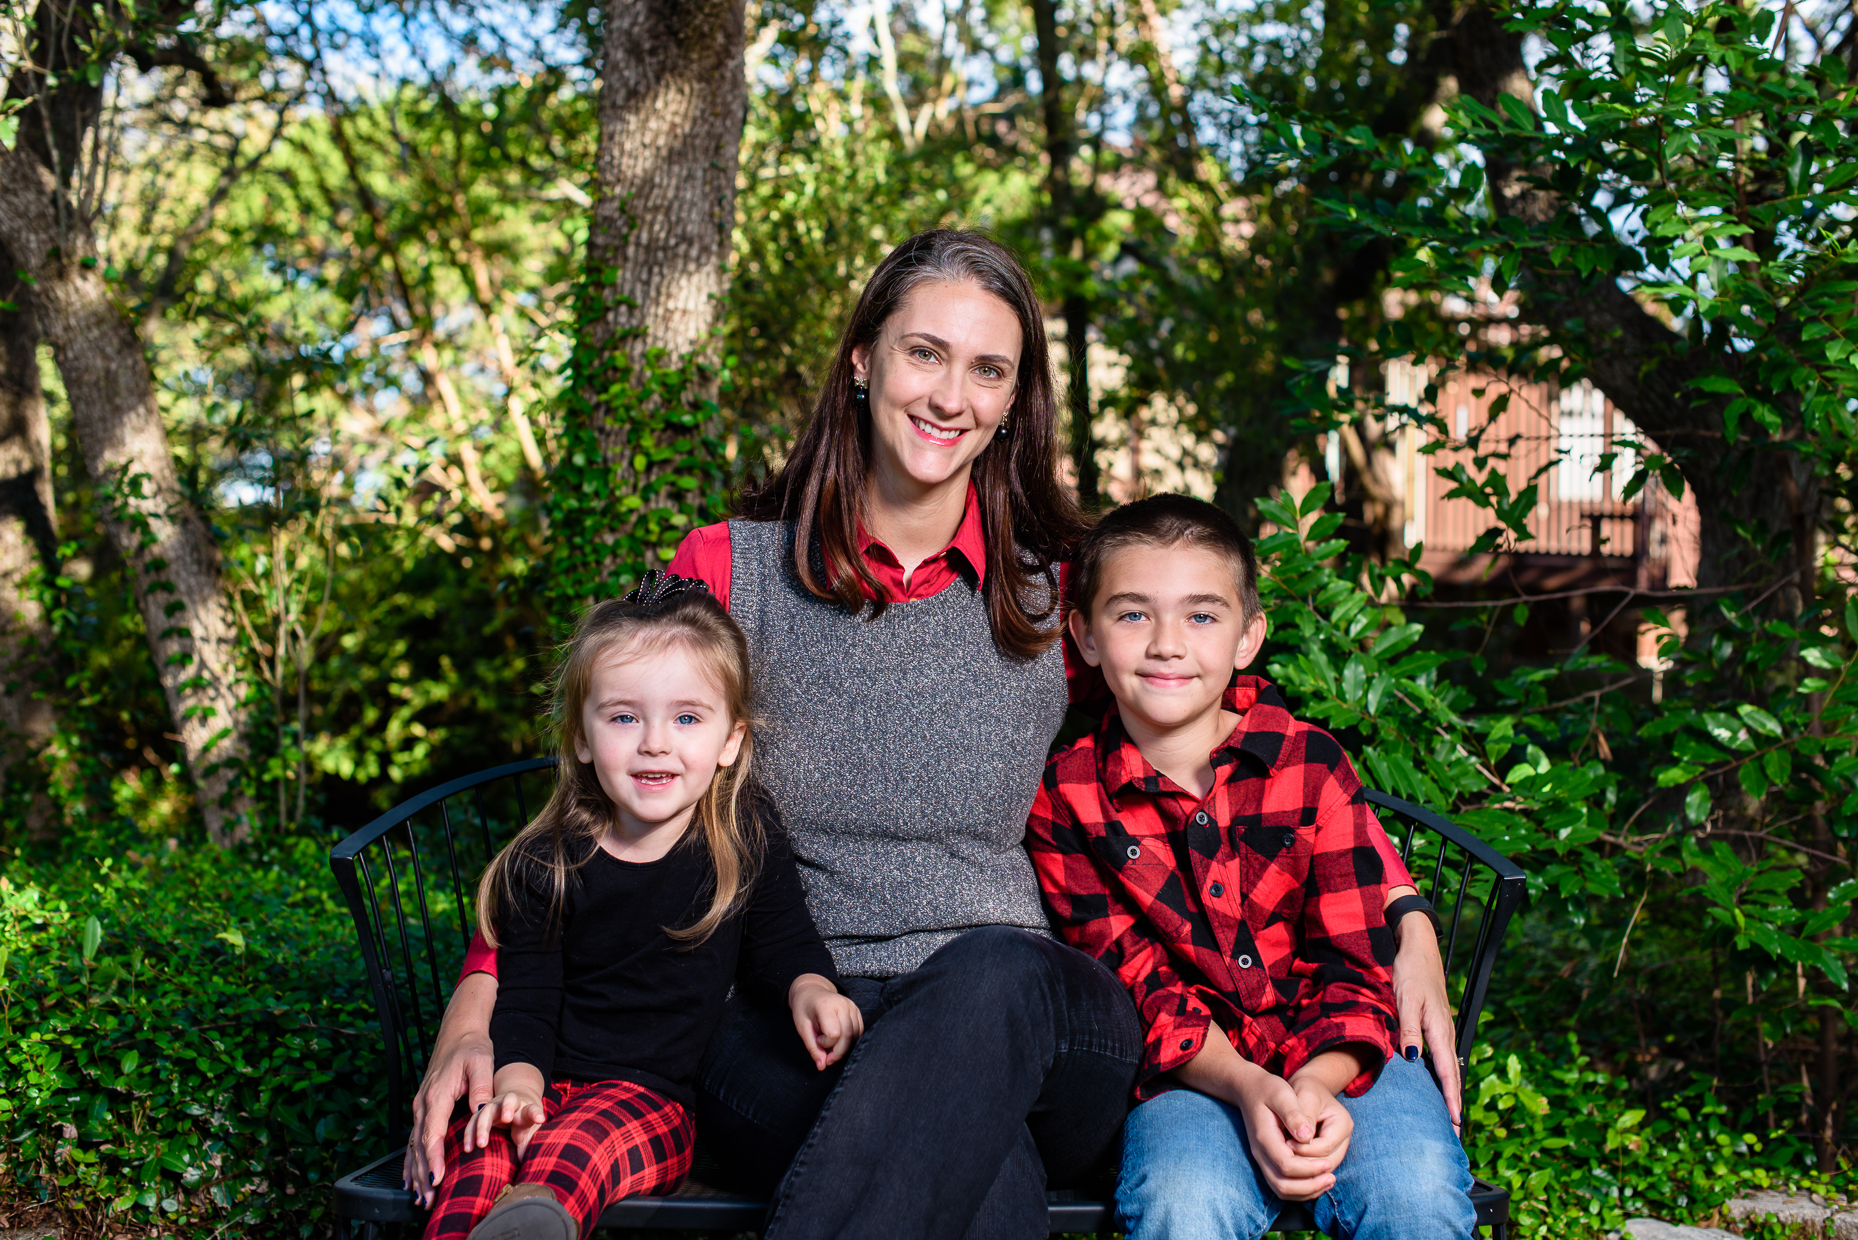 austin photographer, family portraits outdoor